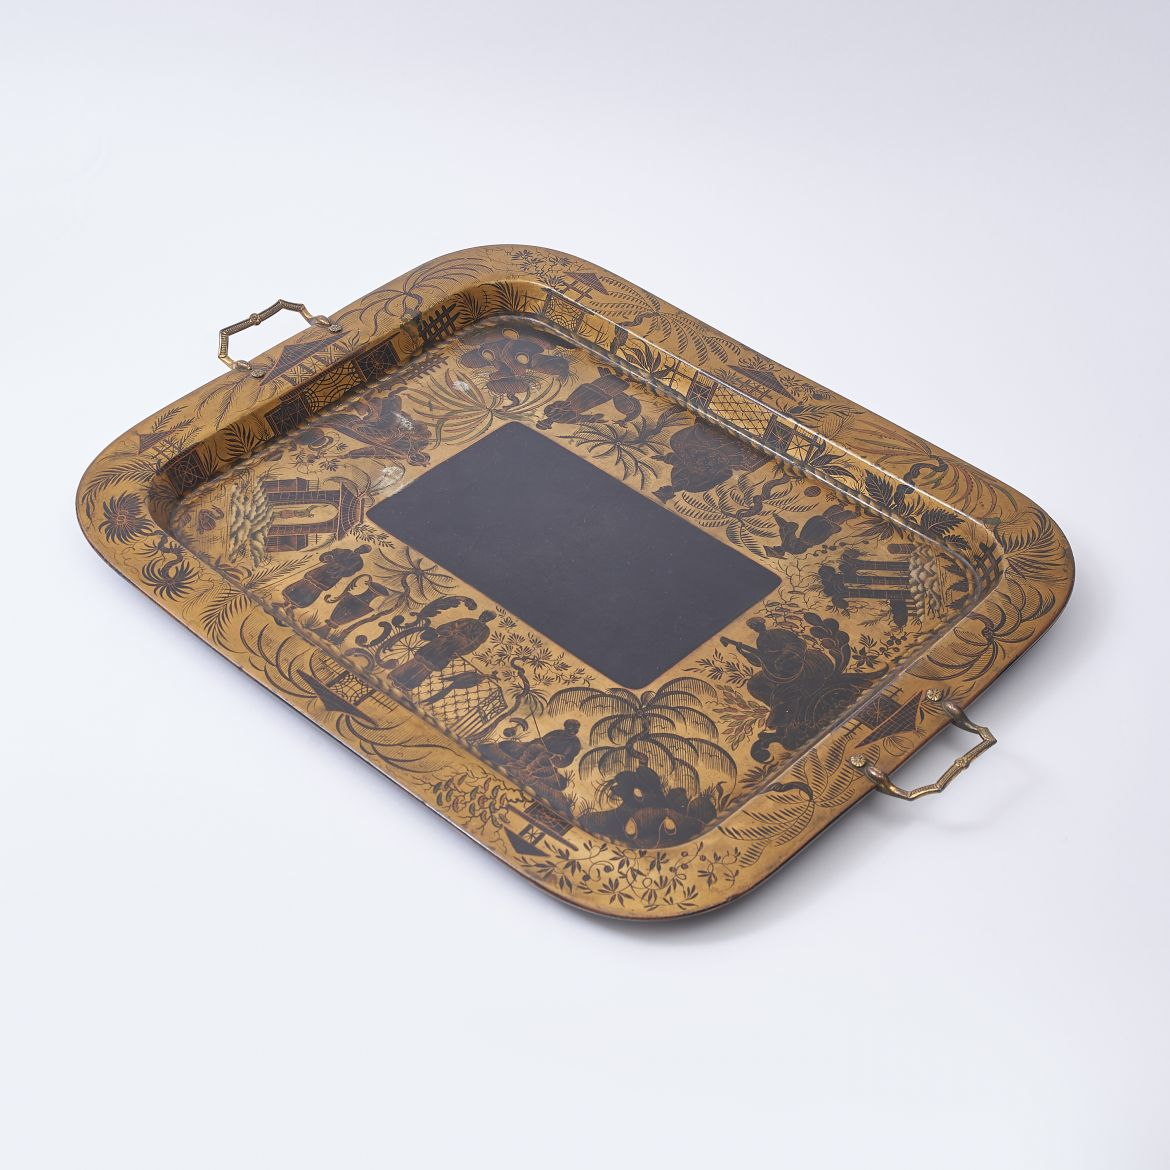 Regency Lacquer Tray